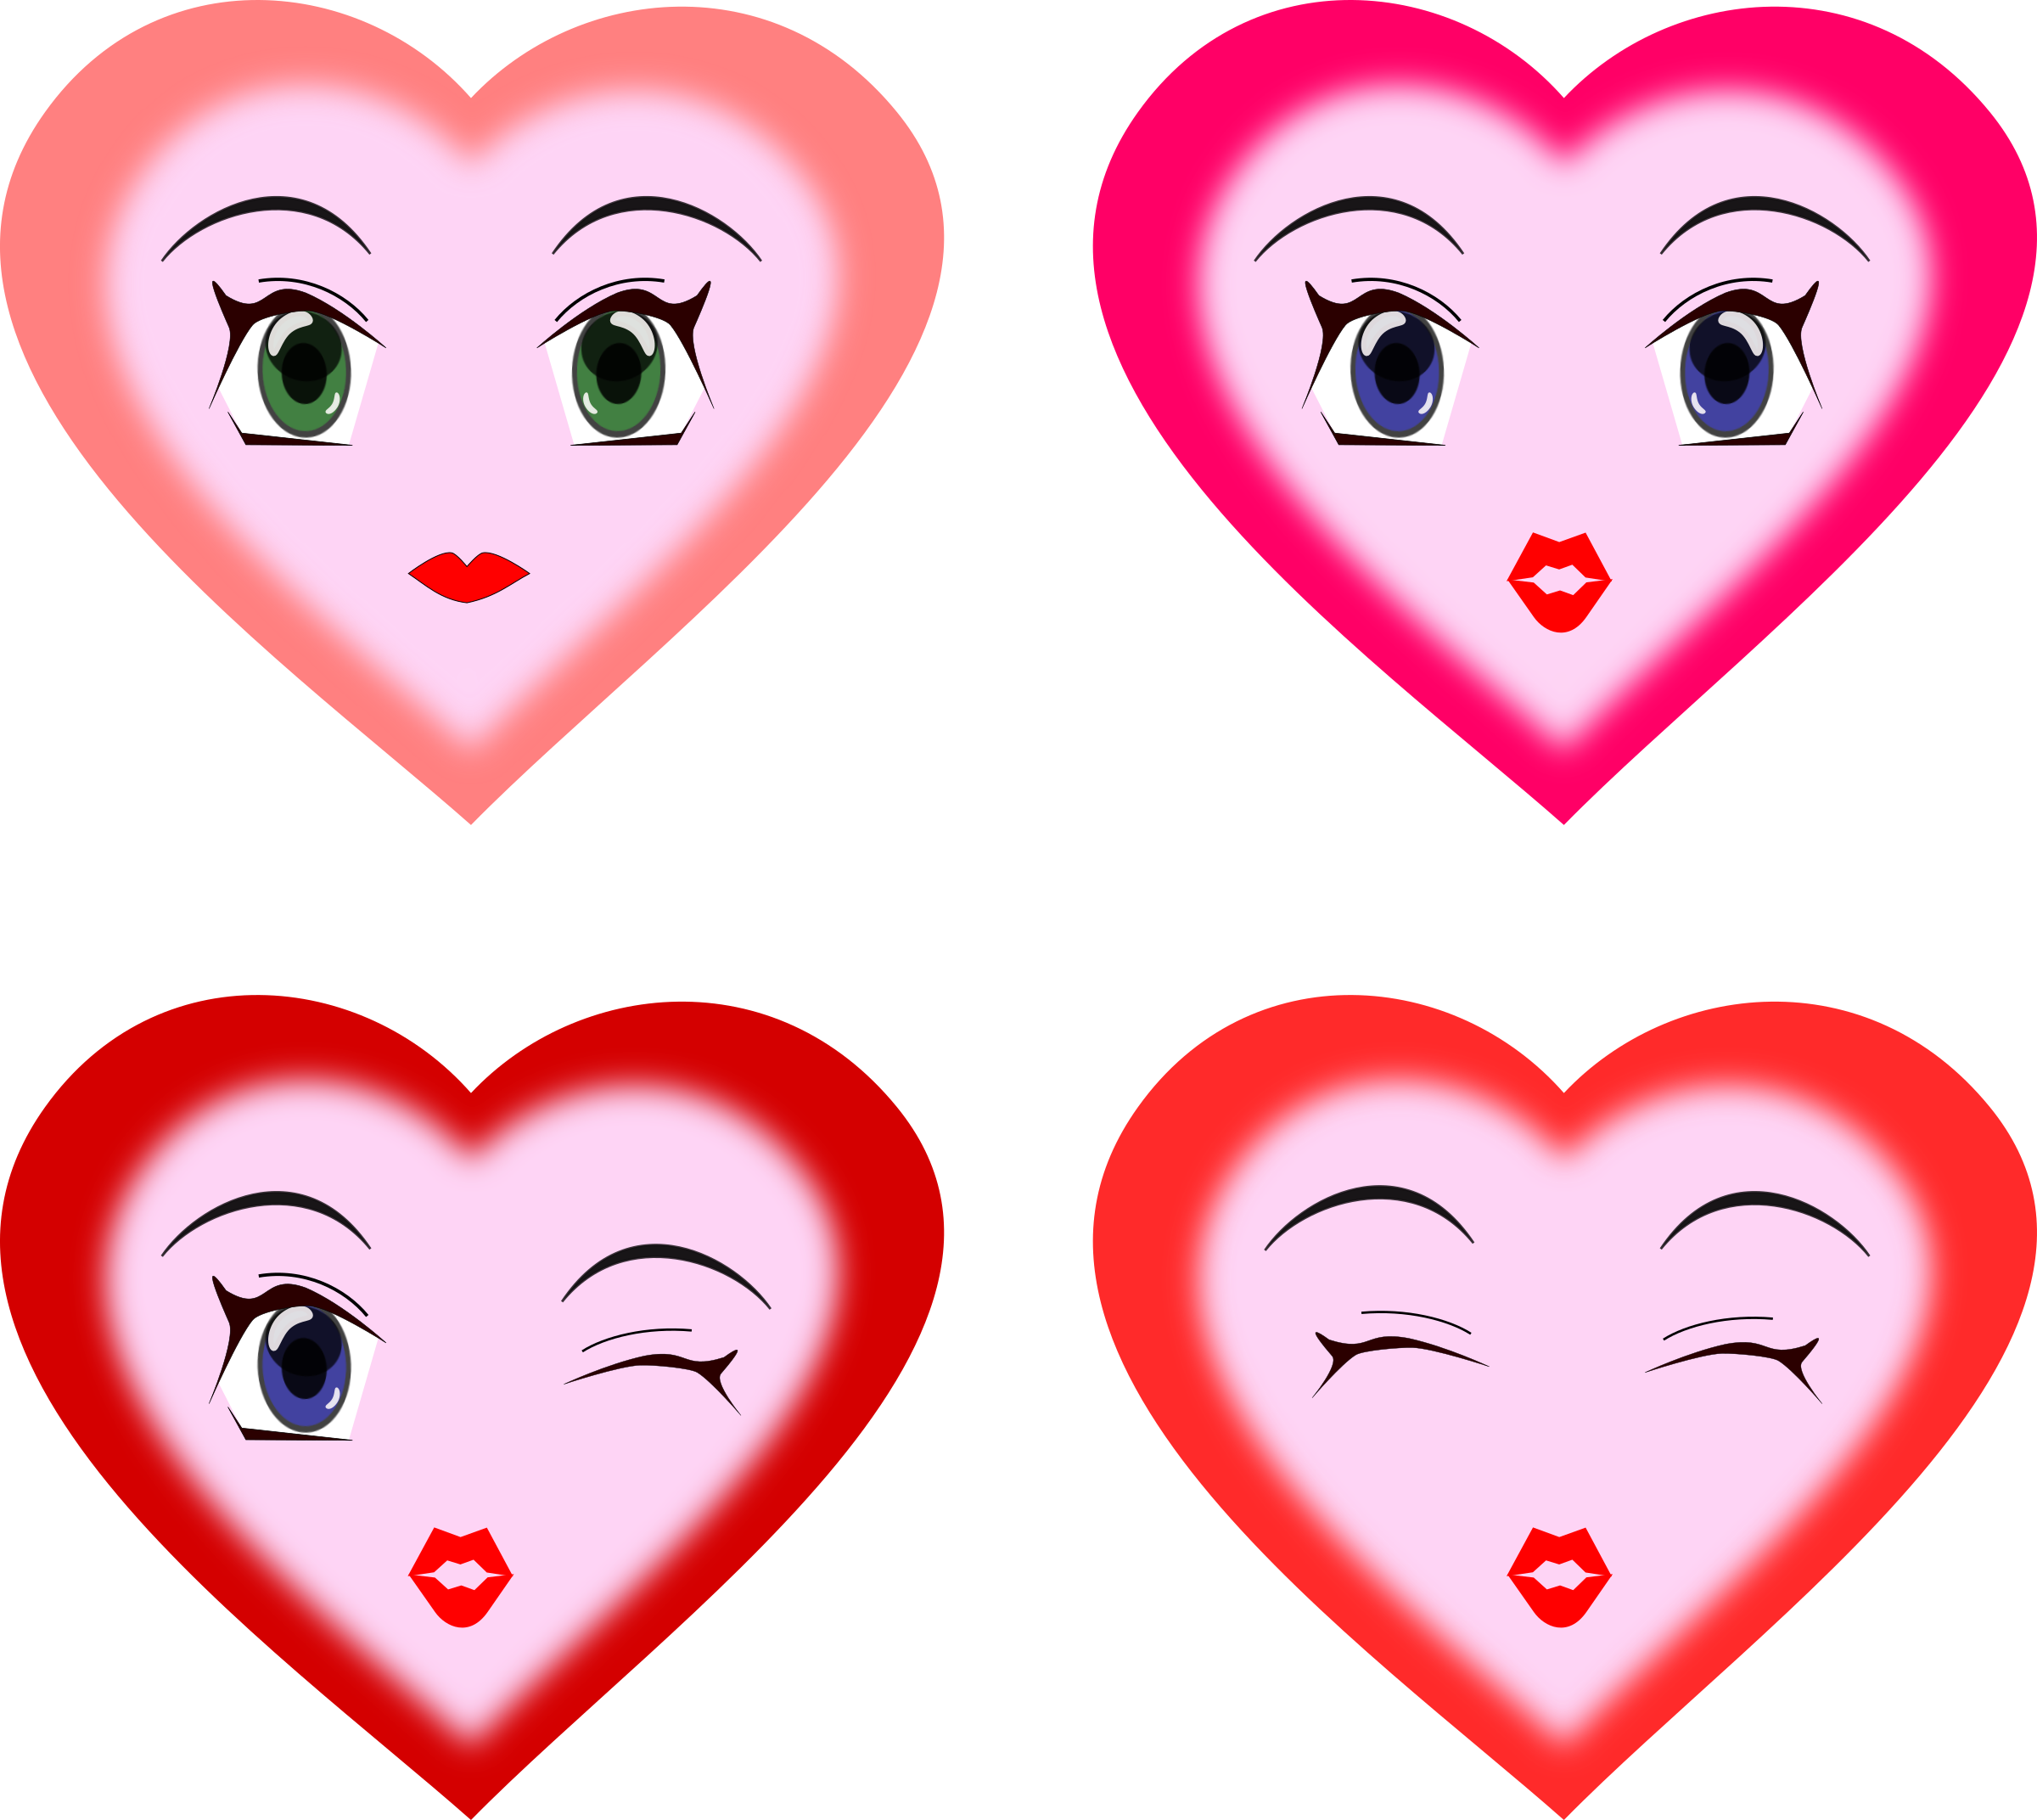 heart faces by wsnaccad